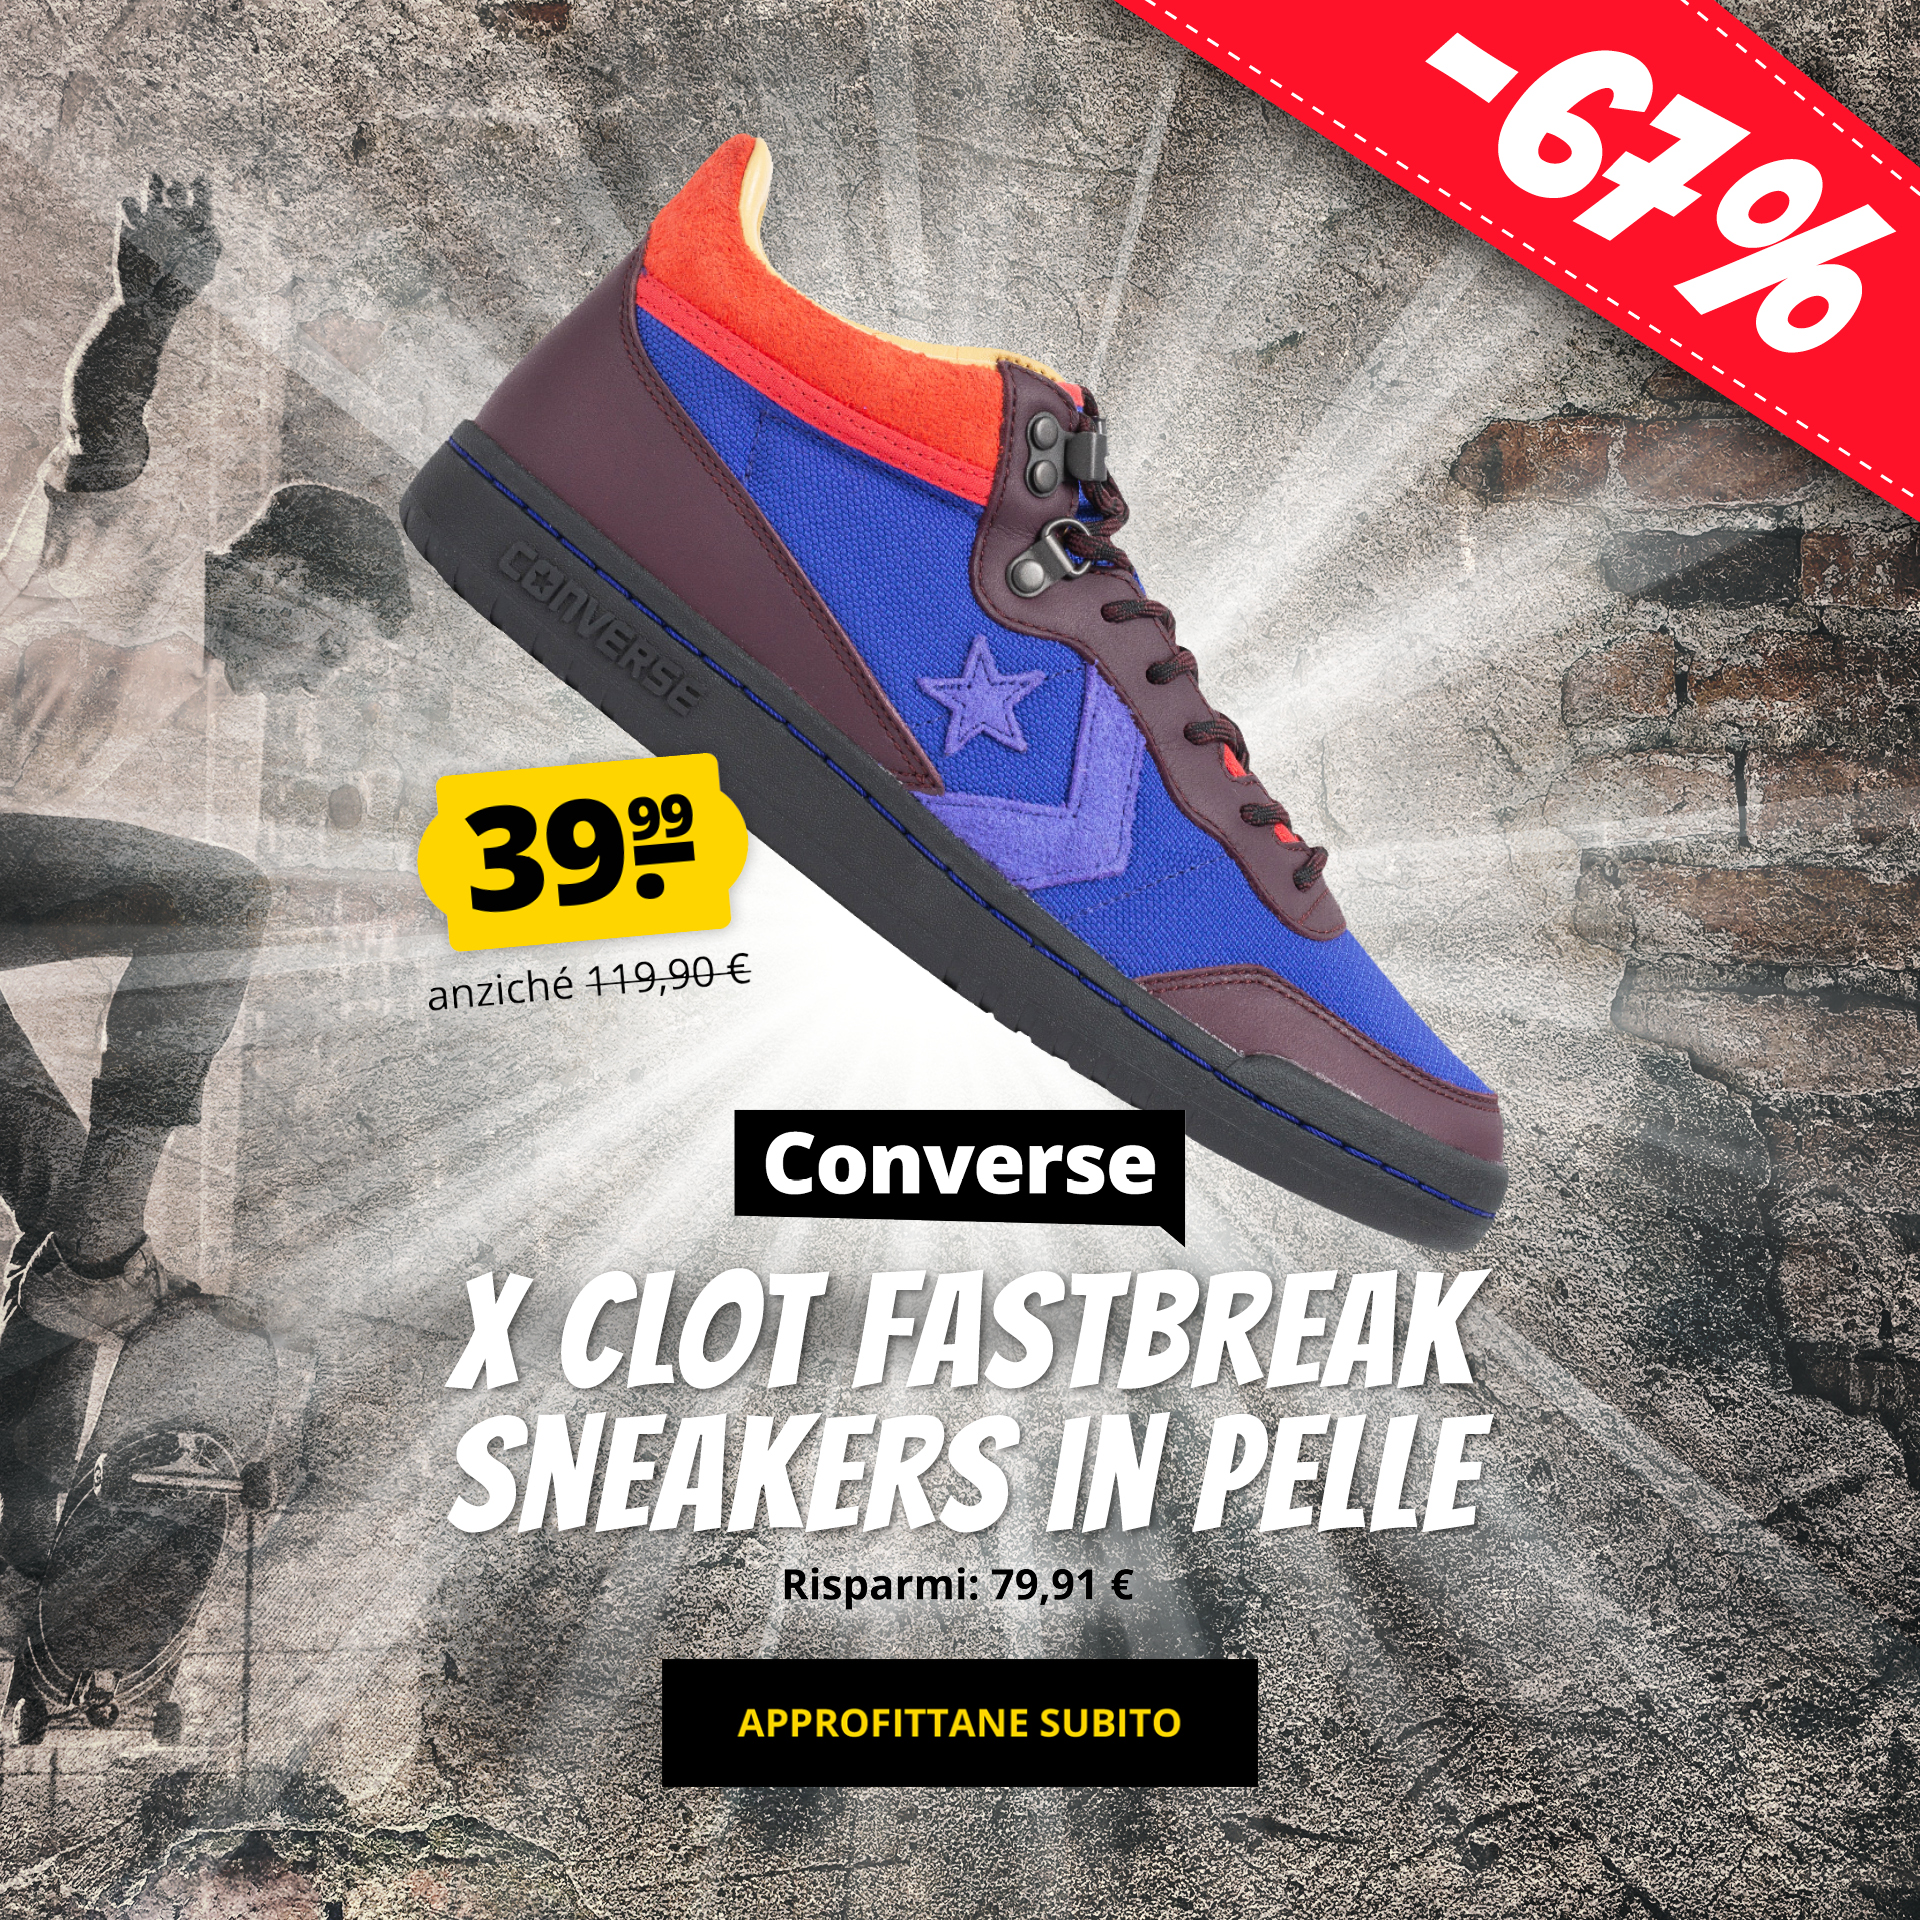 Converse x CLOT Fastbreak Sneakers in pelle solo 39,99 €